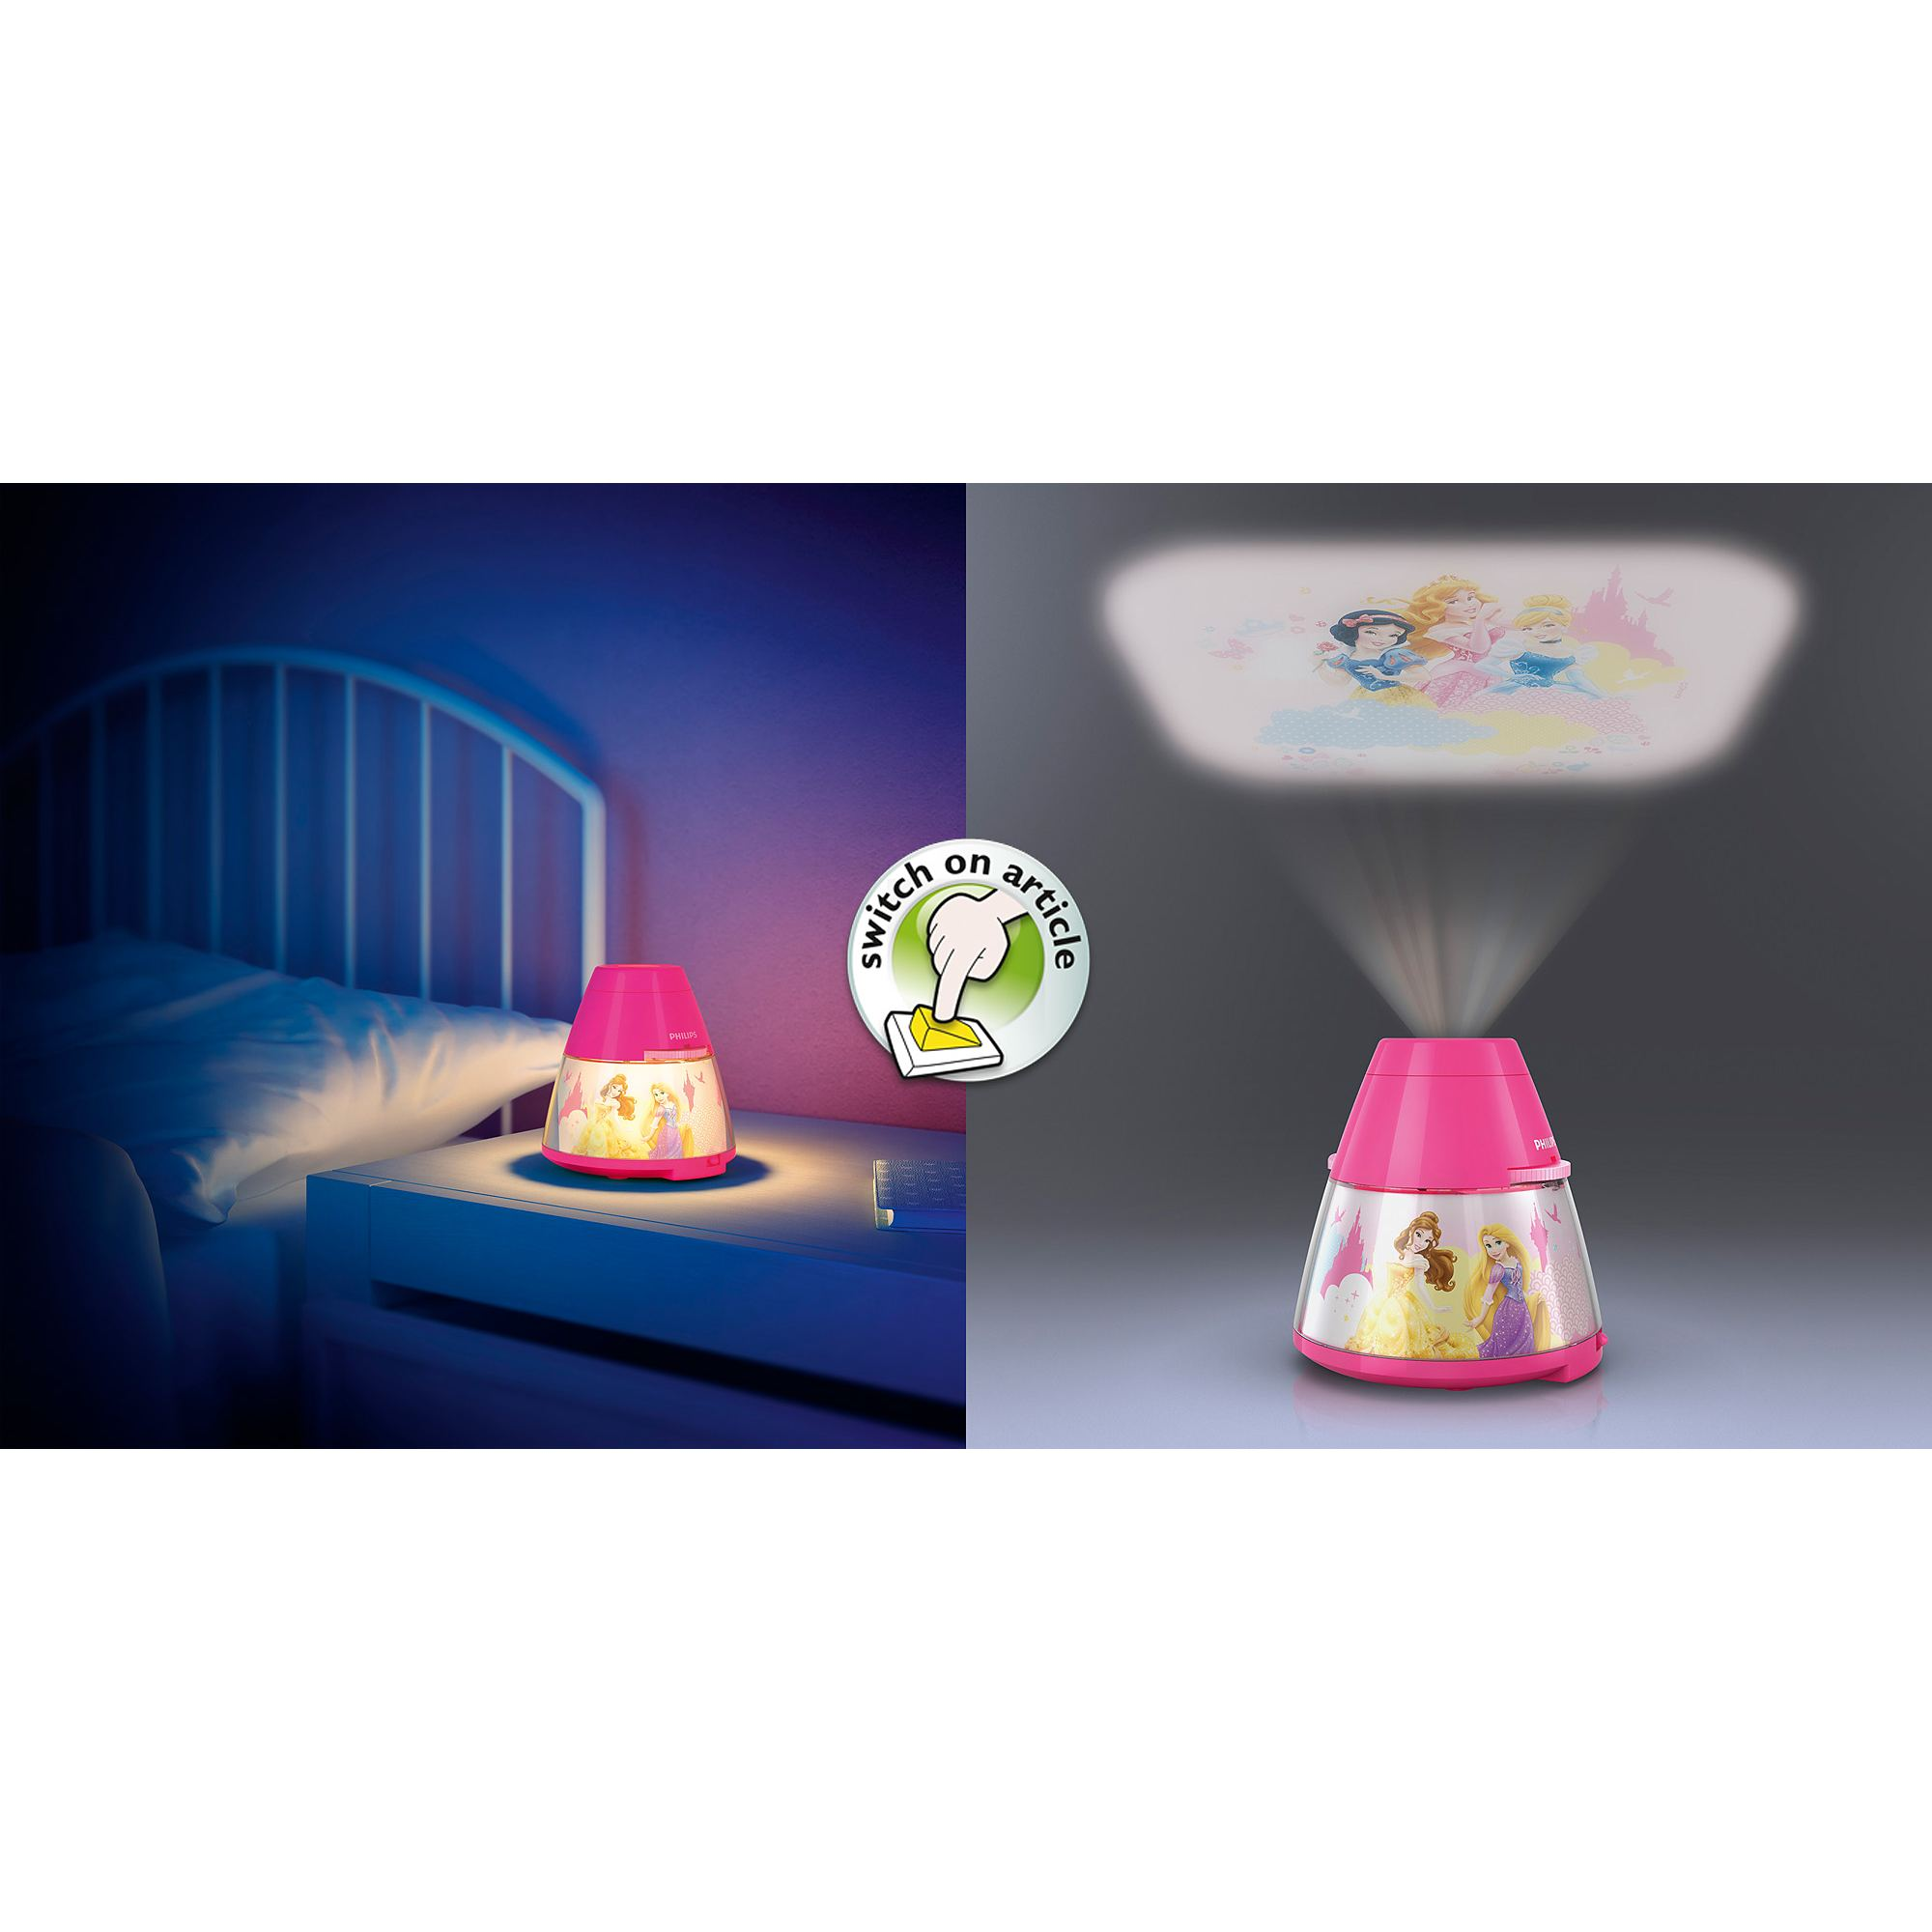 Philips Disney Princess children's LED night light projector portable battery